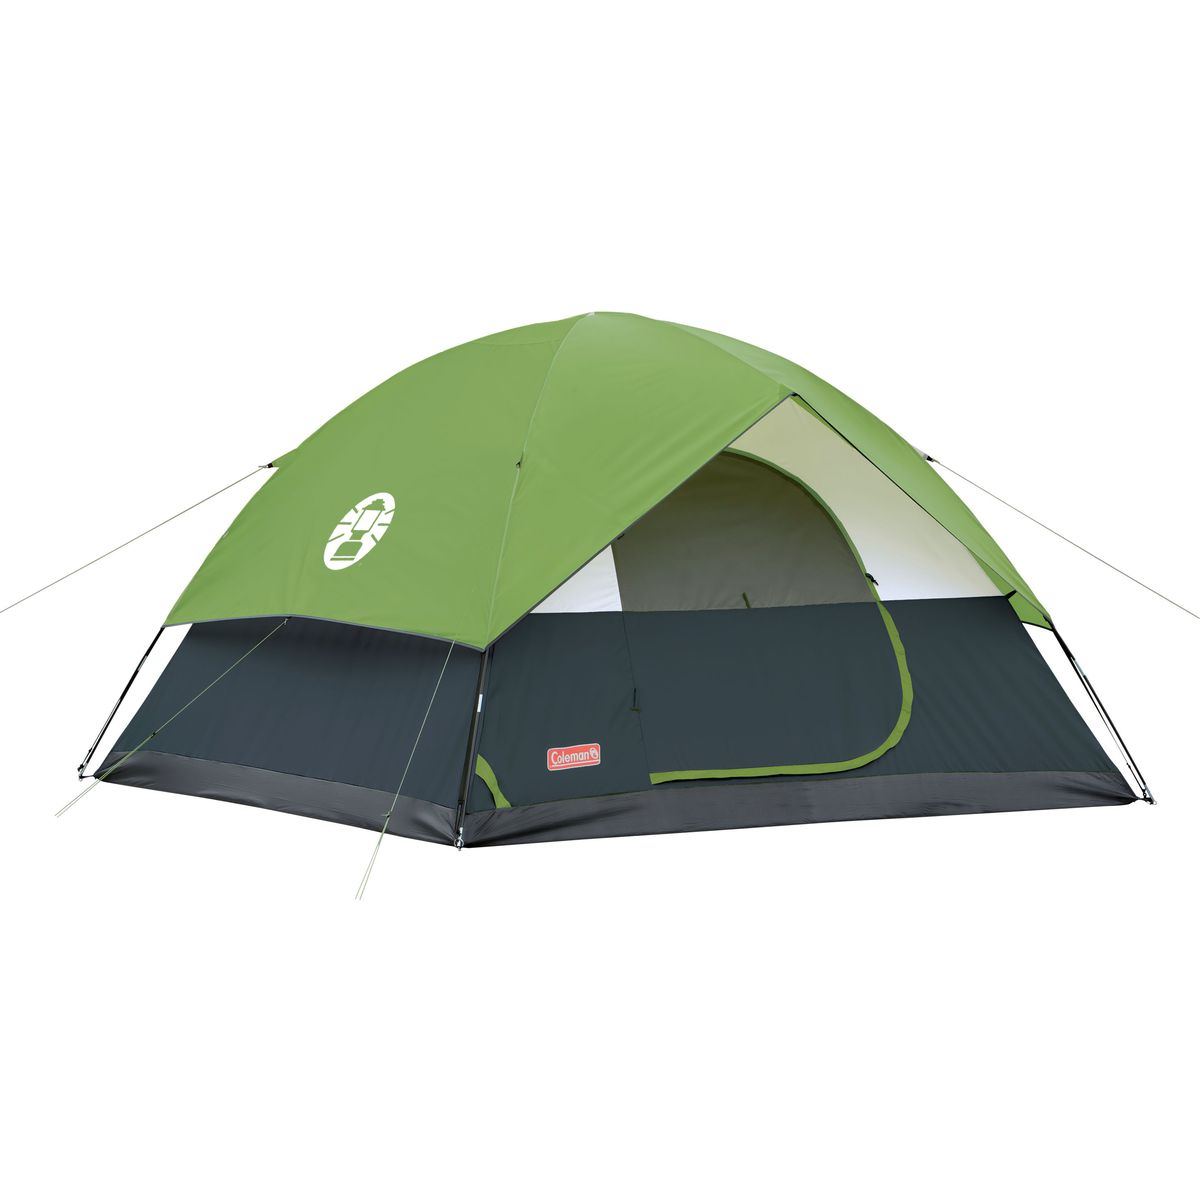 Coleman Sundome 2 Person Tent - Green. Loading zoom  sc 1 st  Takealot.com & Coleman Sundome 2 Person Tent - Green | Buy Online in South Africa ...